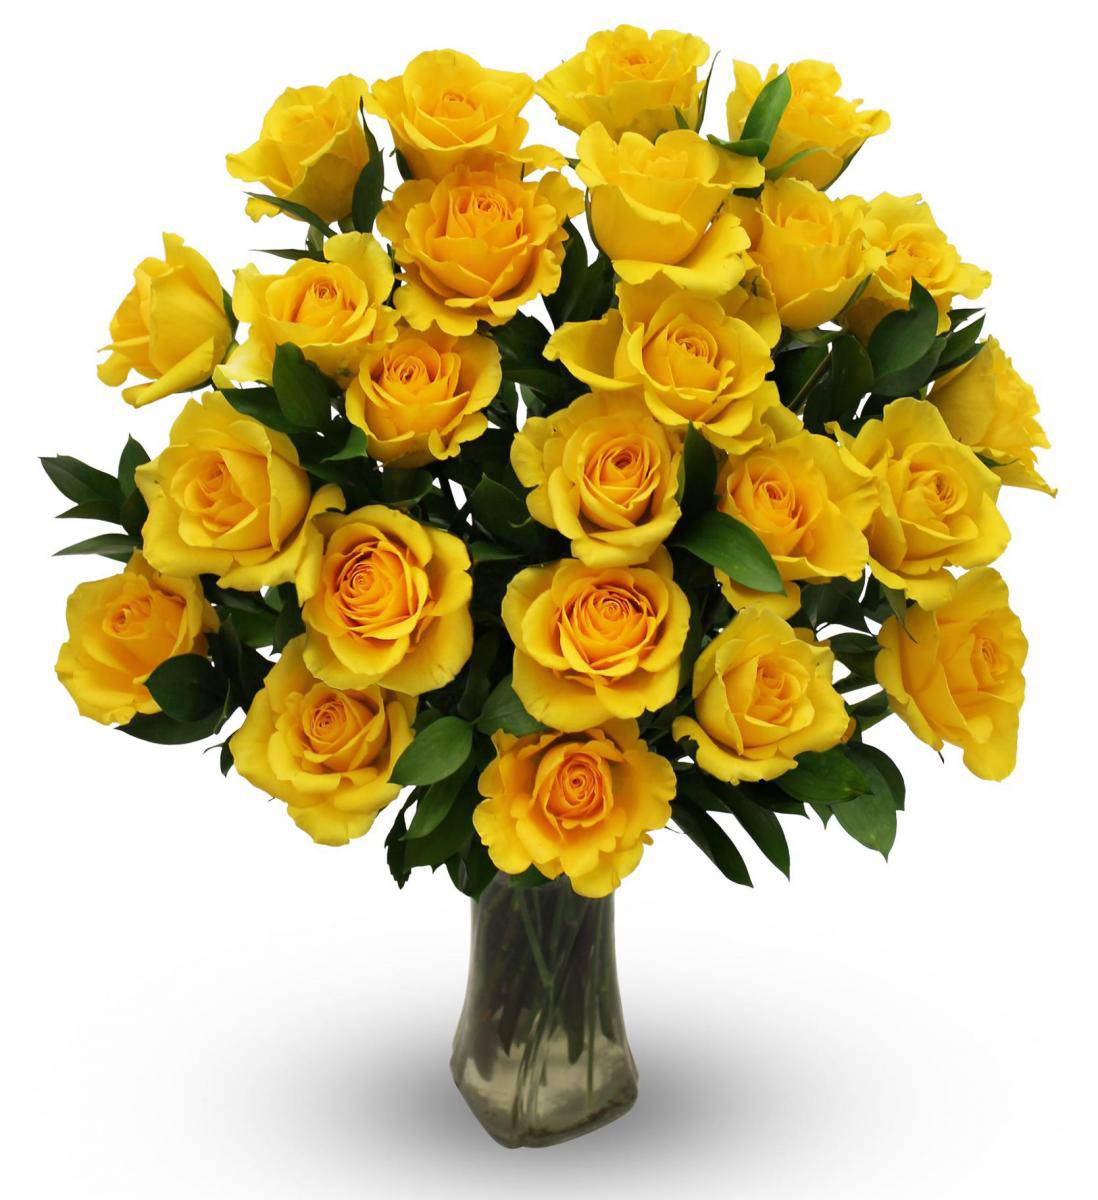 Wallpaper Of Yellow Rose: Yellow Roses Images